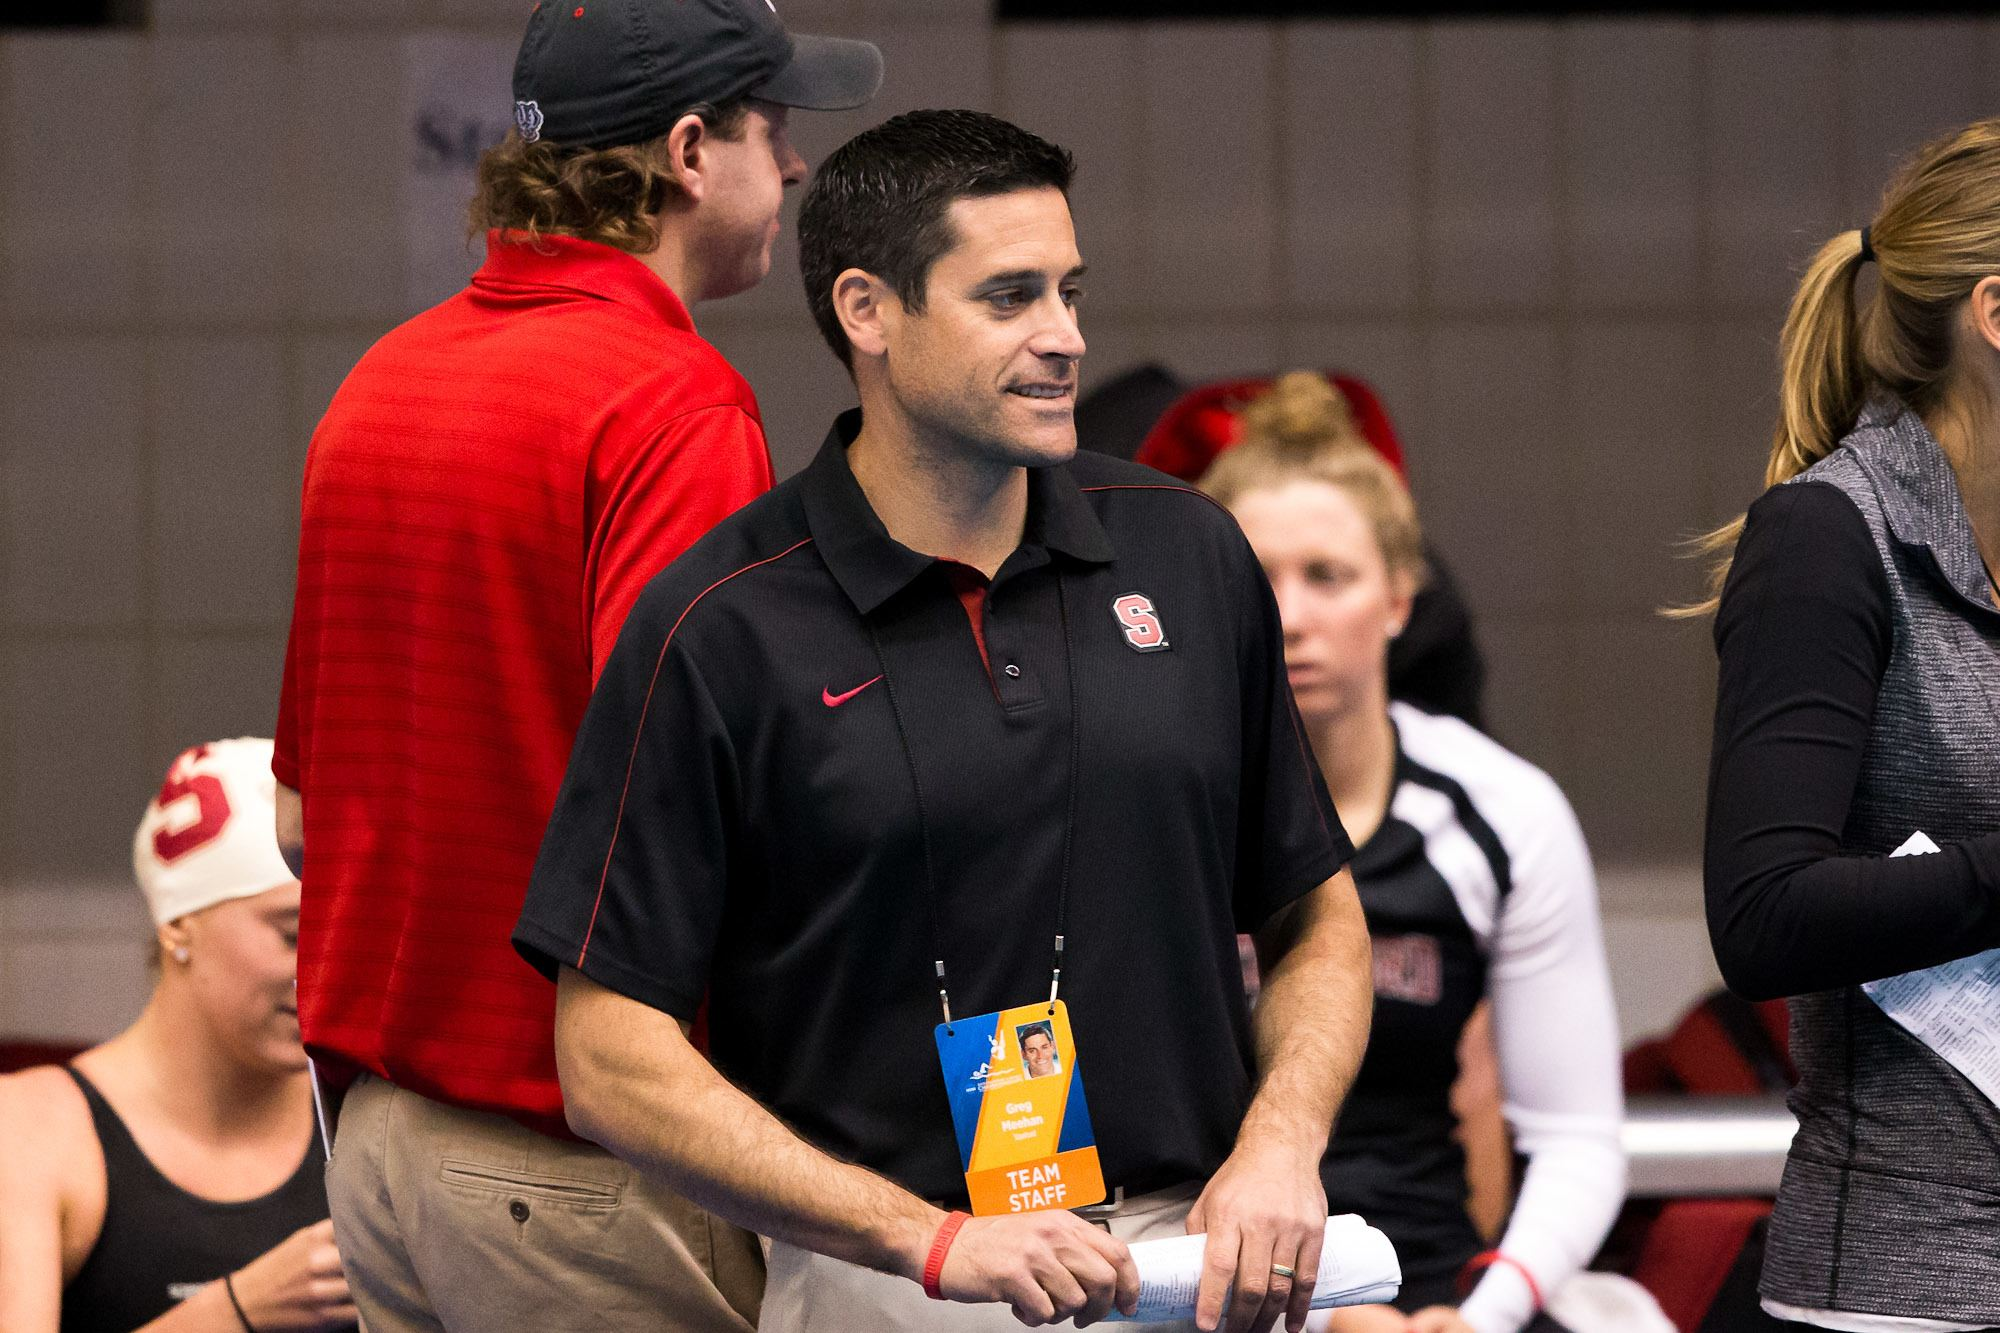 USA Swimming Names Dave Durden and Greg Meehan Coaches for